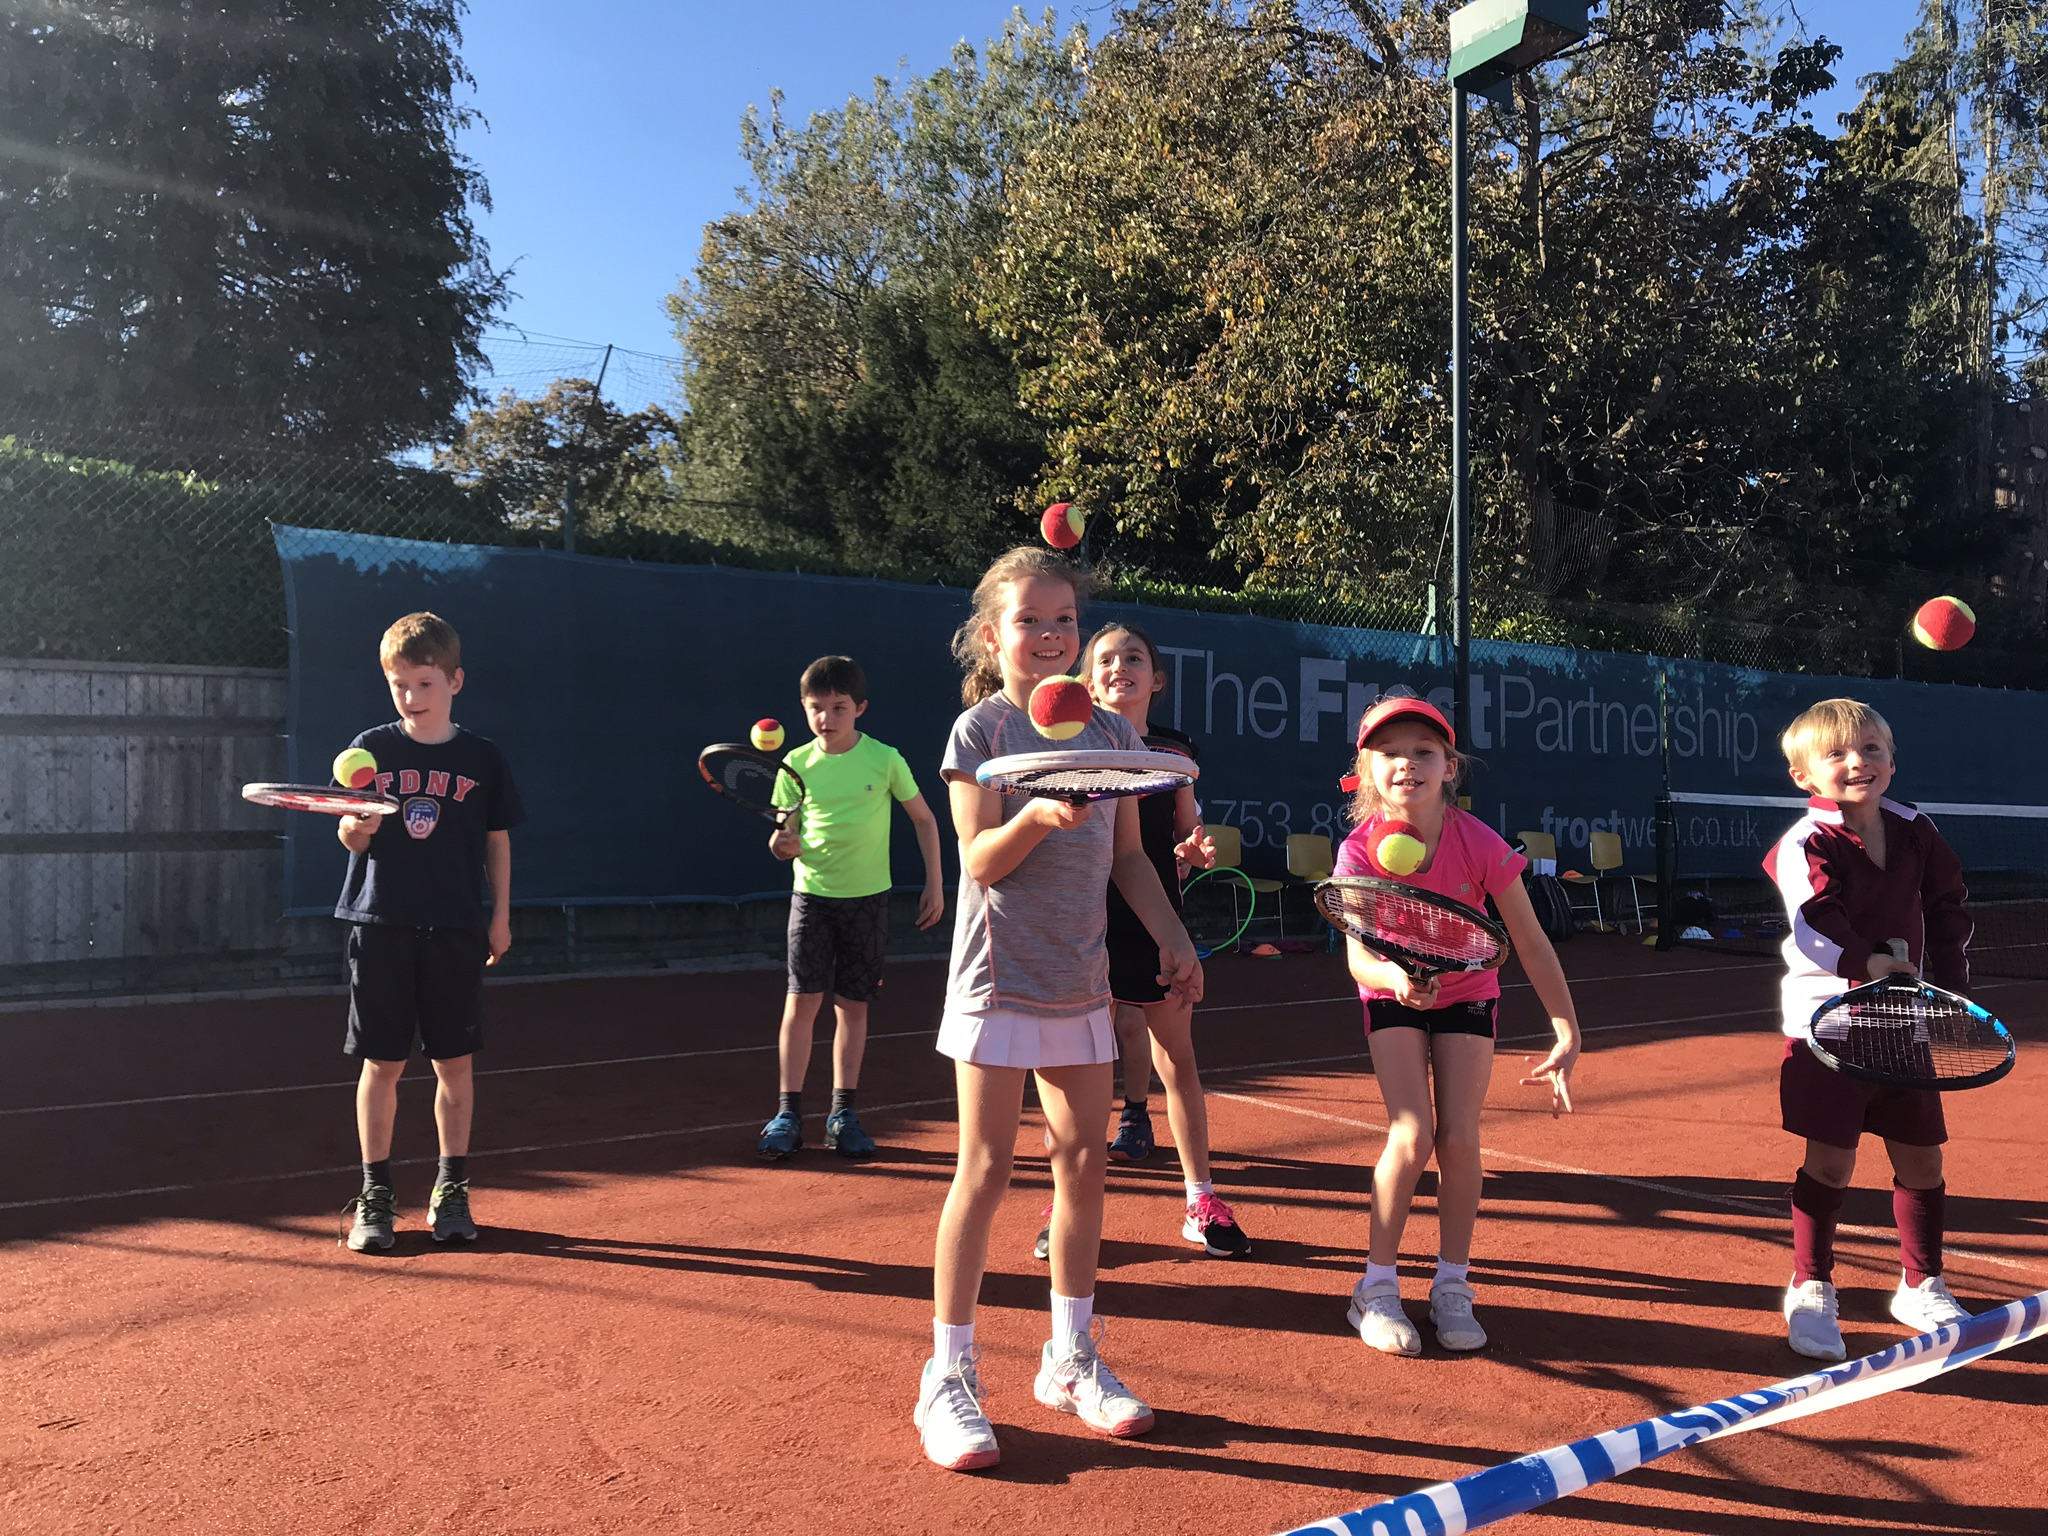 Court18 tennis coaching